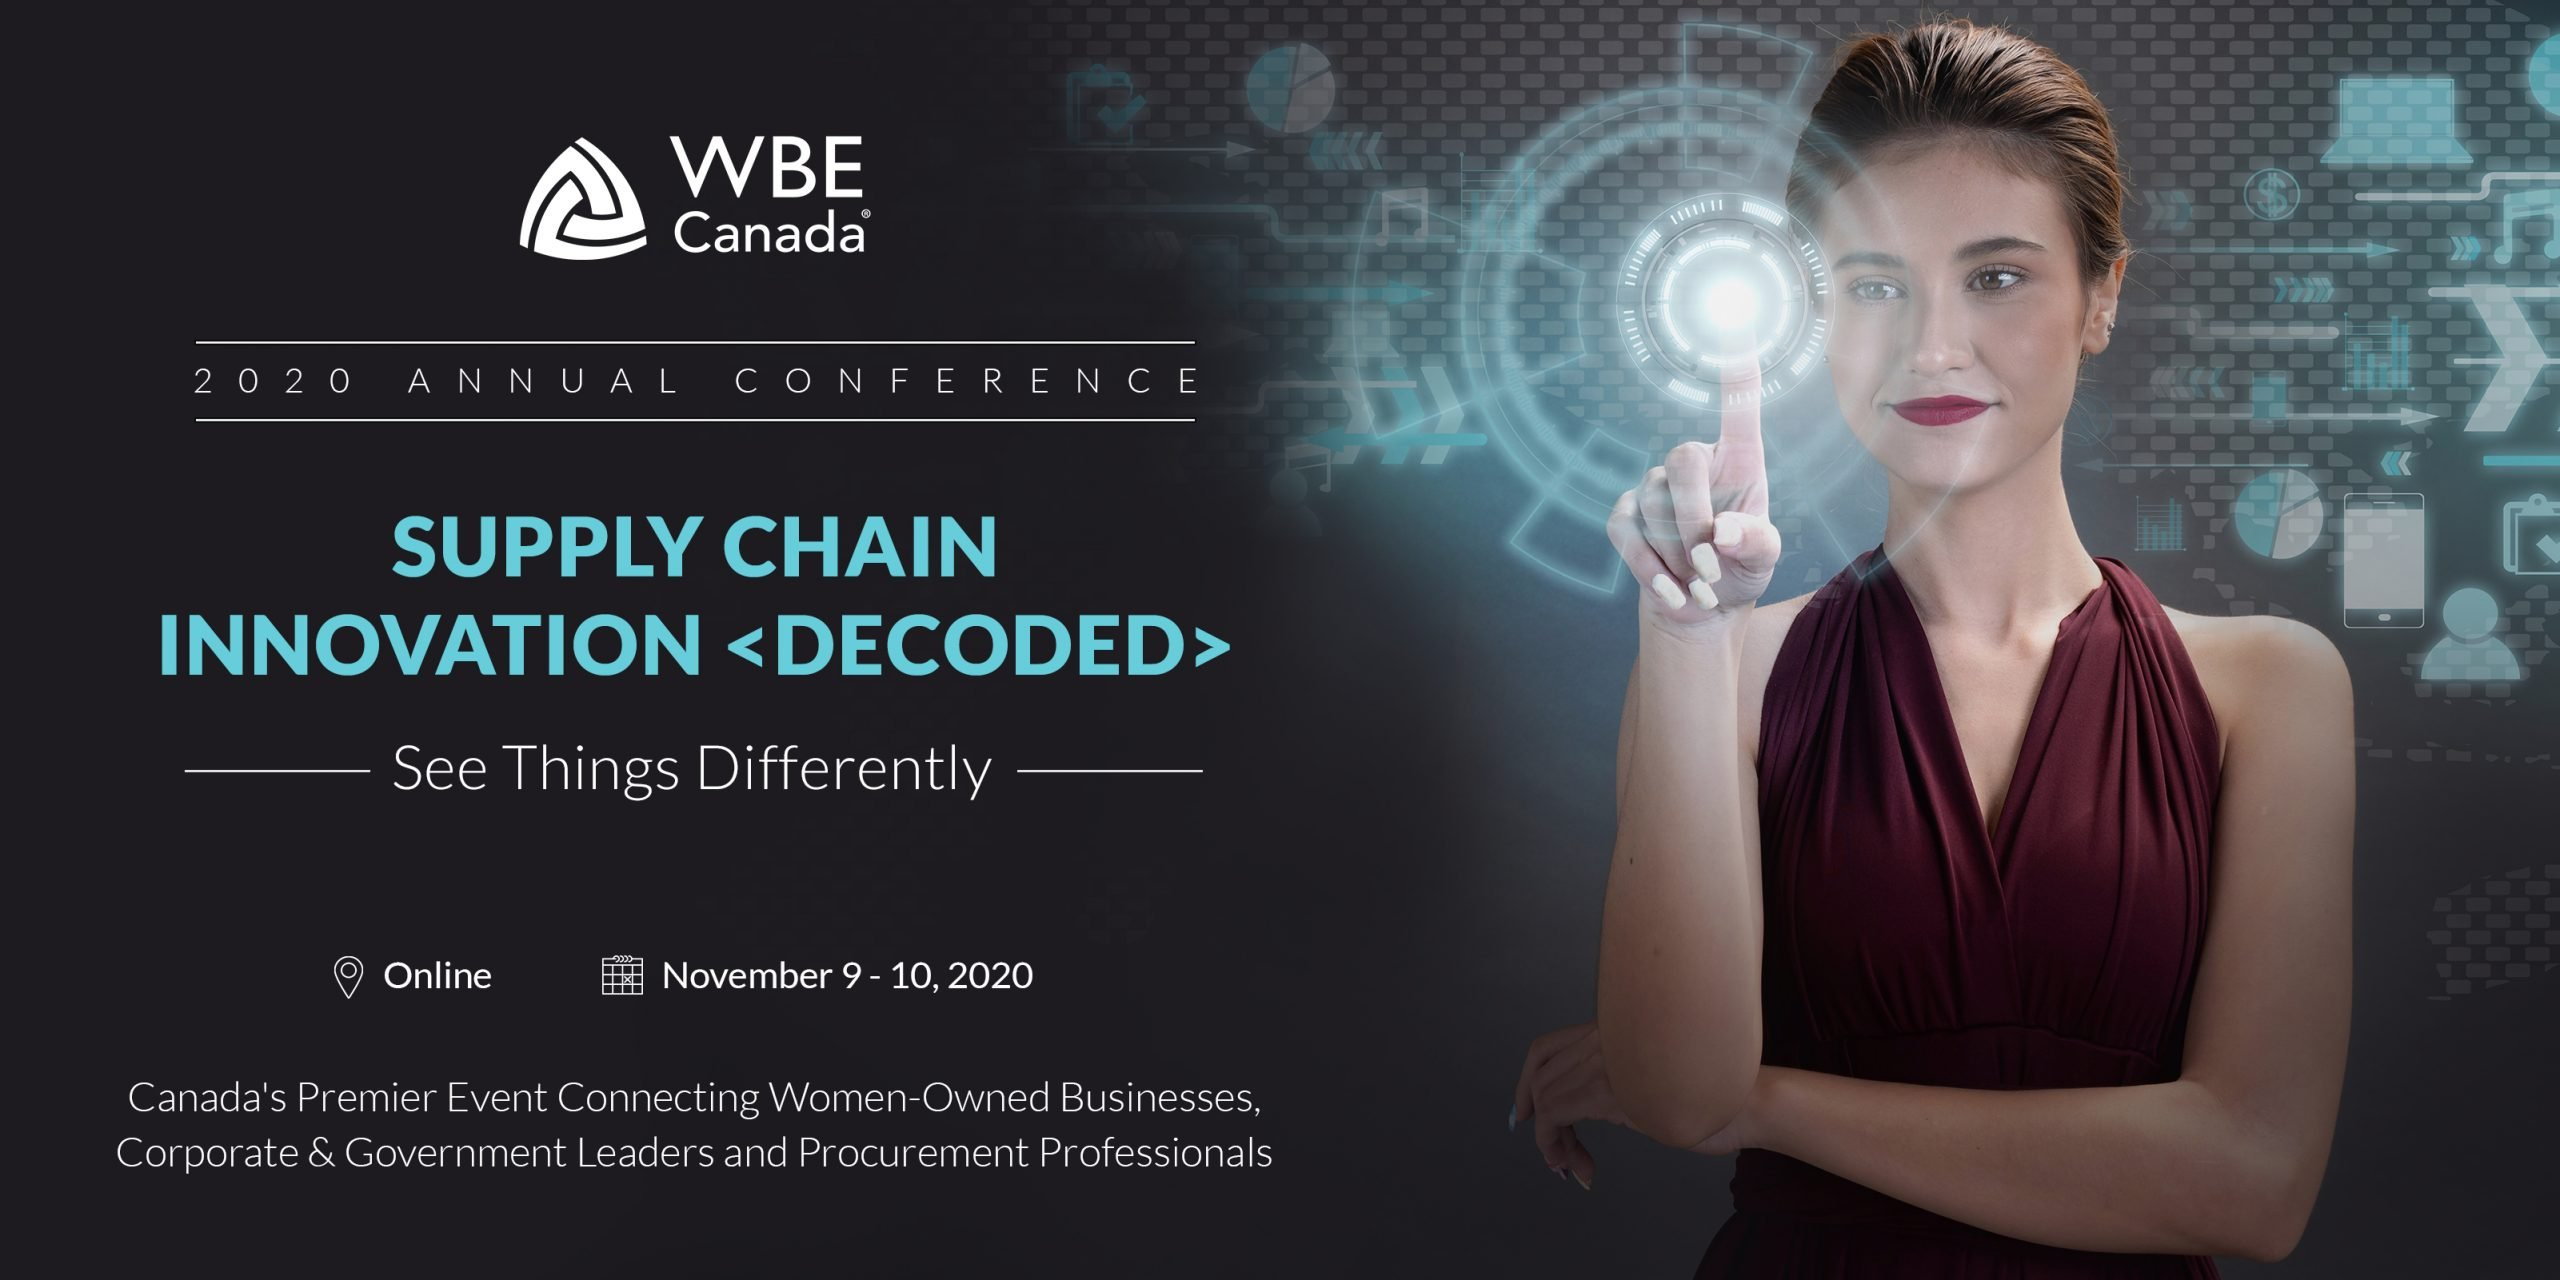 WBE Canada 2020 Annual Conference